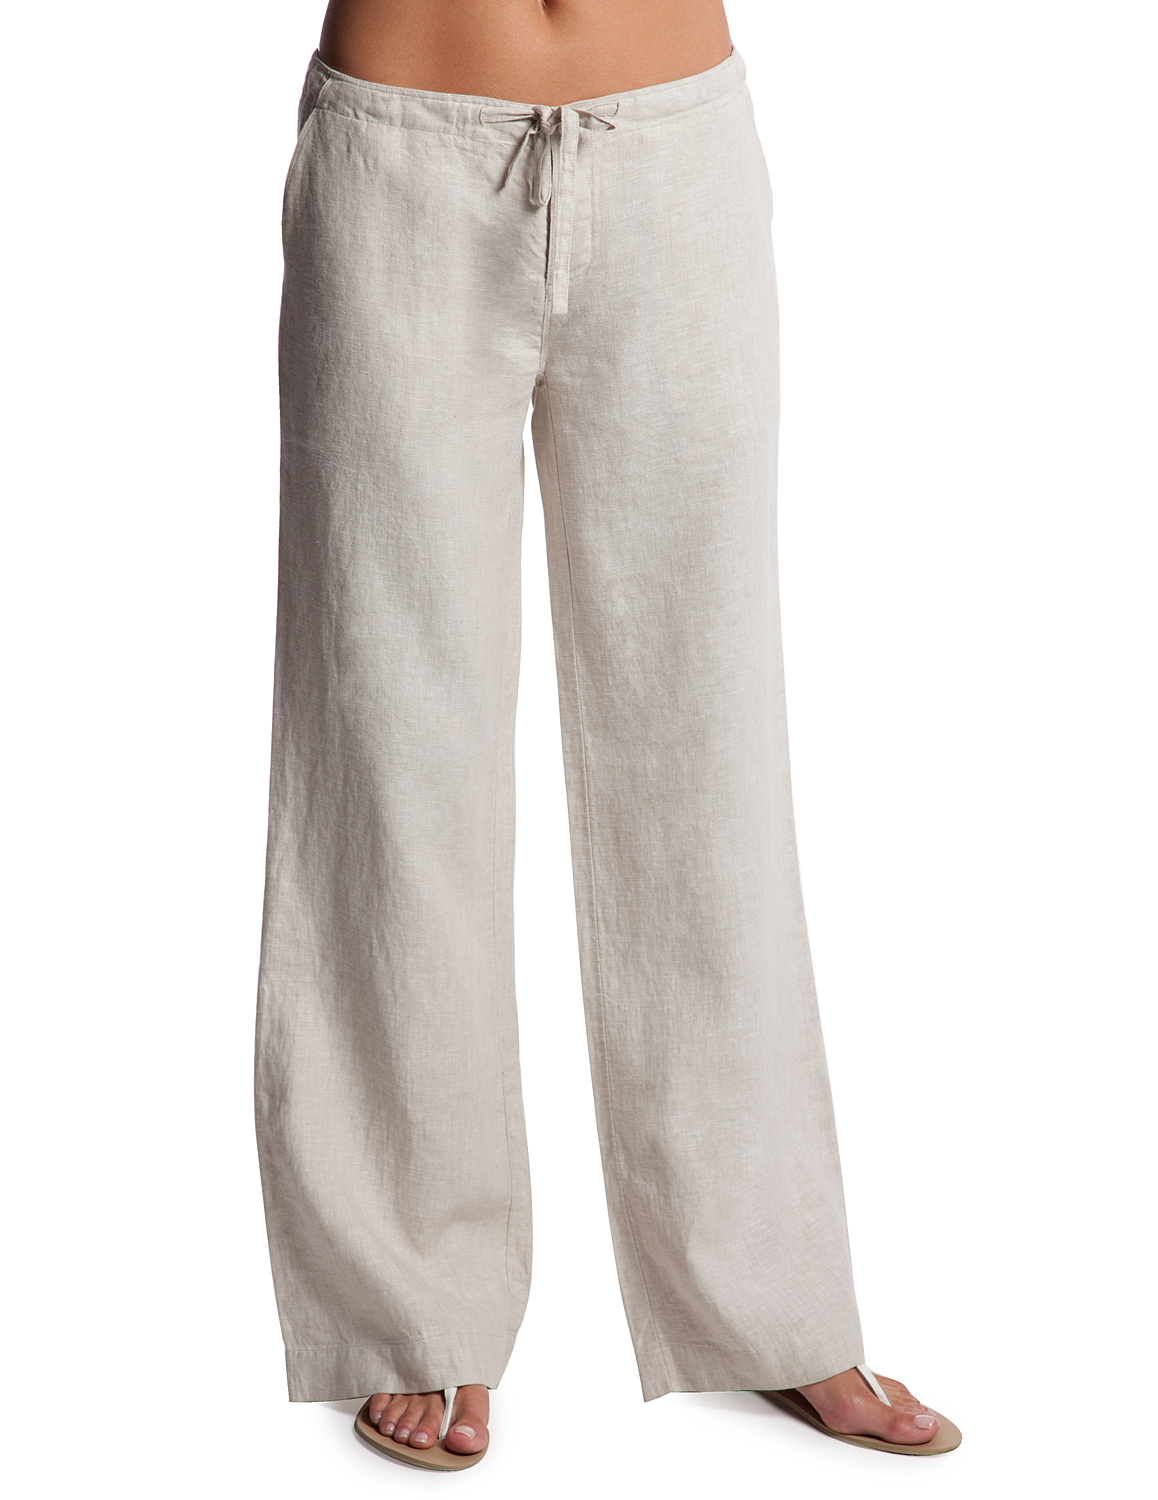 Popular White Linen Pants For Women  Relaxed Linen Pants  Island Company